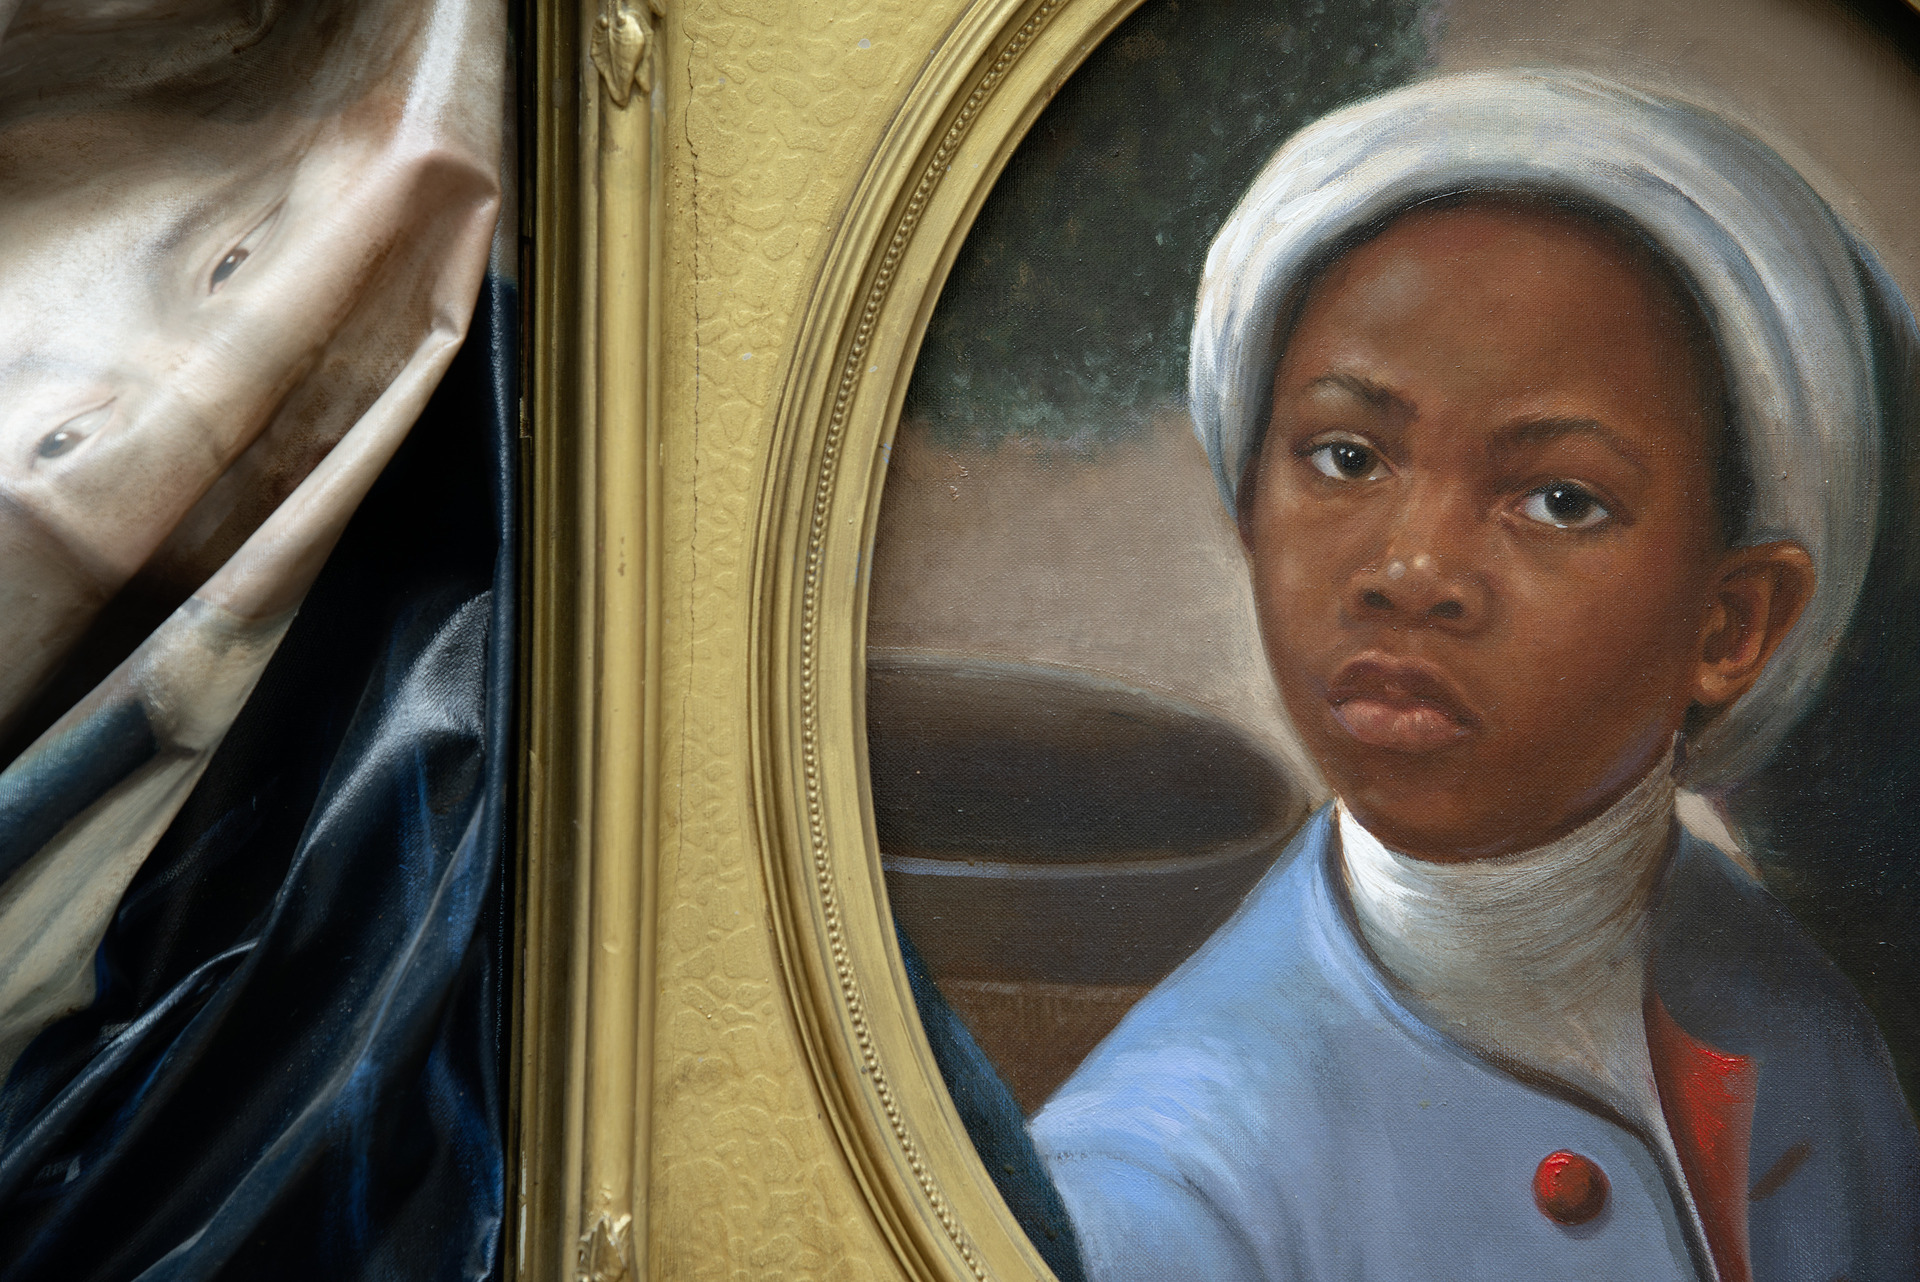 Titus Kaphar, Enough About You (detail), 2016, oil on canvas with an antique frame, on loan from the Collection of Arthur Lewis and Hau Nguyen, Courtesy of the artist, photo by Richard Caspole